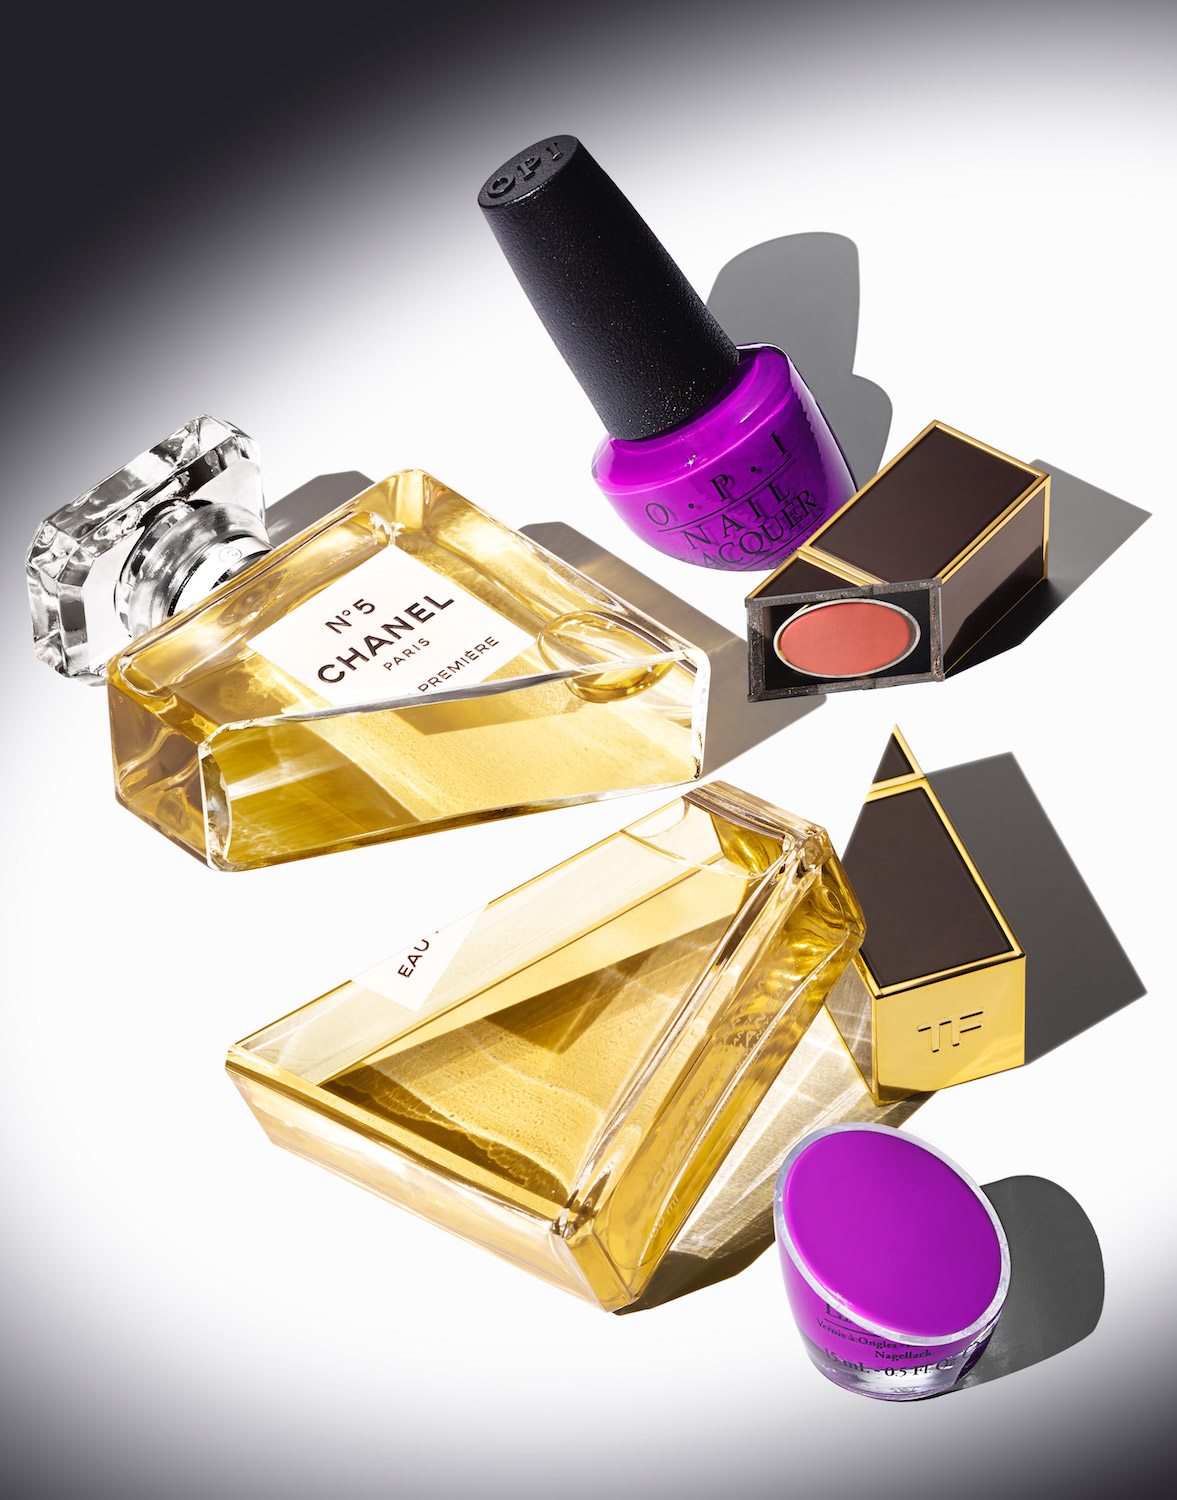 cosmetics and fragrance master sop With the news that international flavors and fragrances has appointed its second master perfumer, cosmetics business finds out what this elusive role entails from the nose himself.